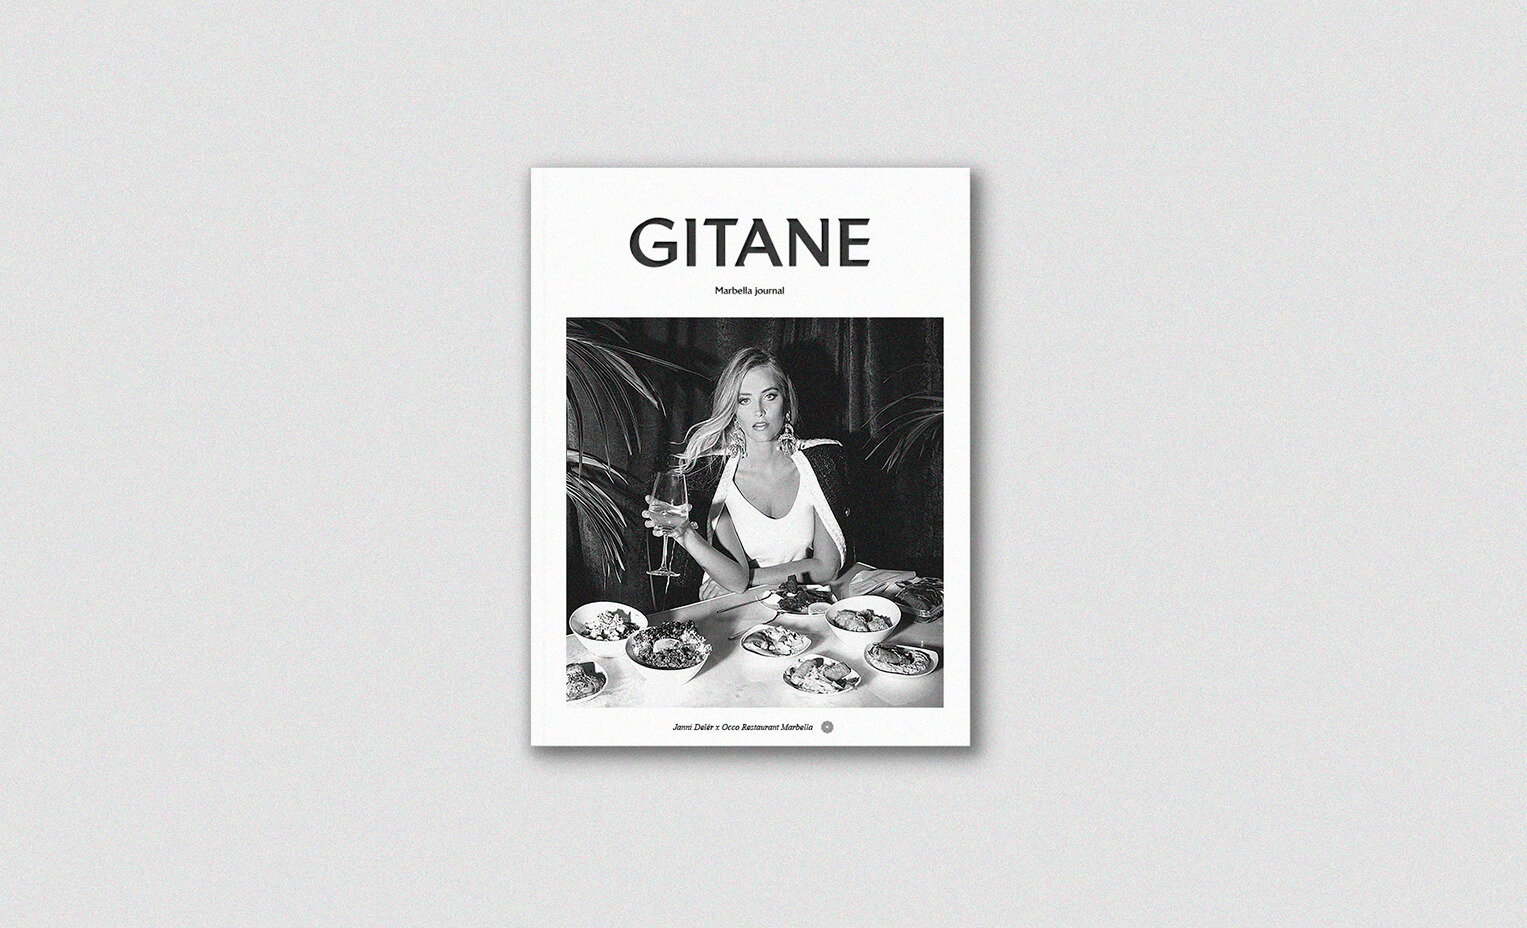 gitane-issue-1-cover